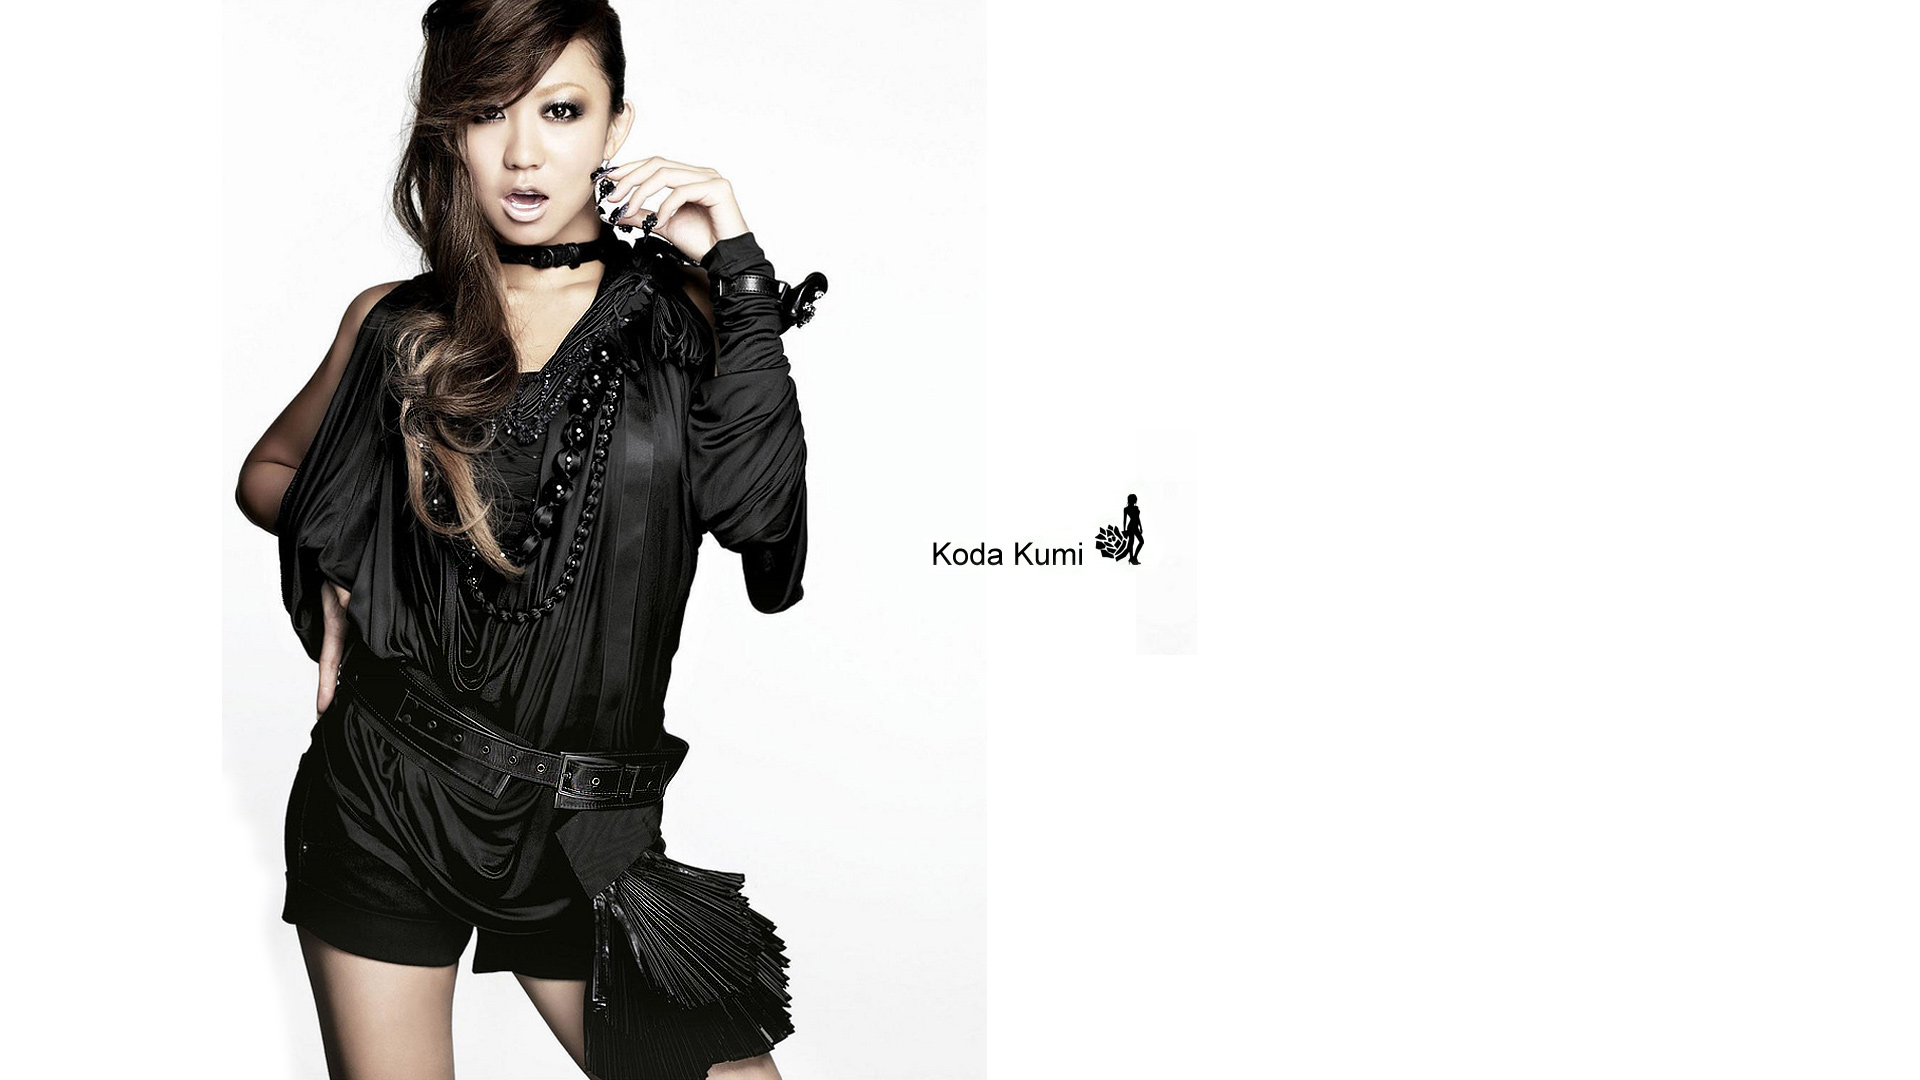 Koda Kumi Wallpaper 06 By Ferchu On Deviantart